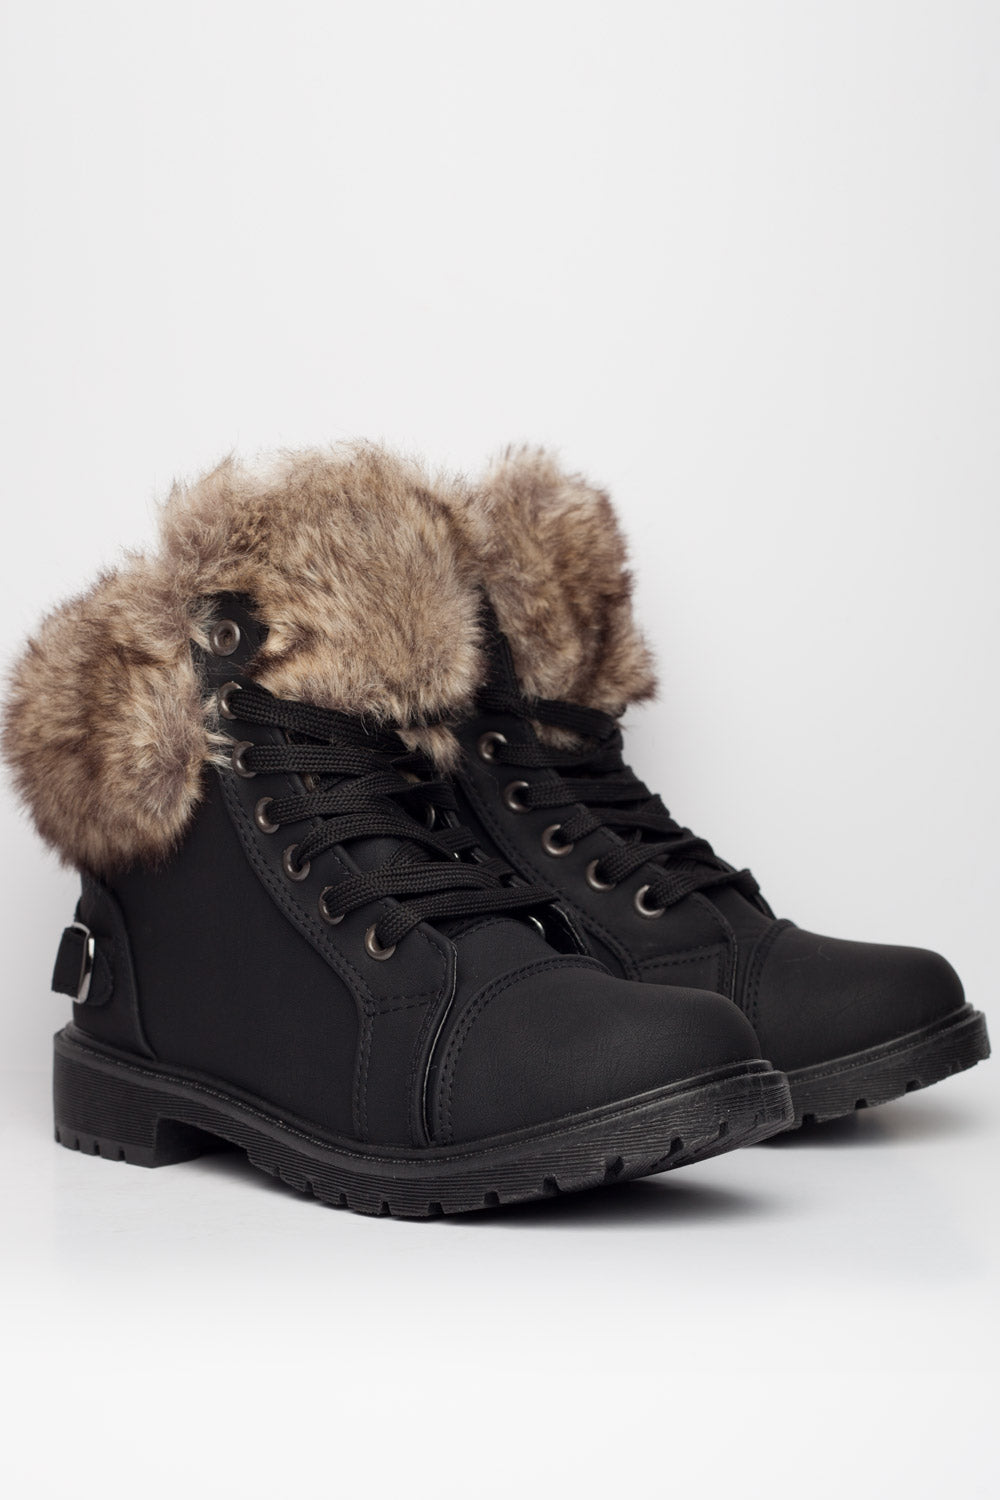 quality arriving low priced Faux Fur Lined Ankle Boots Black